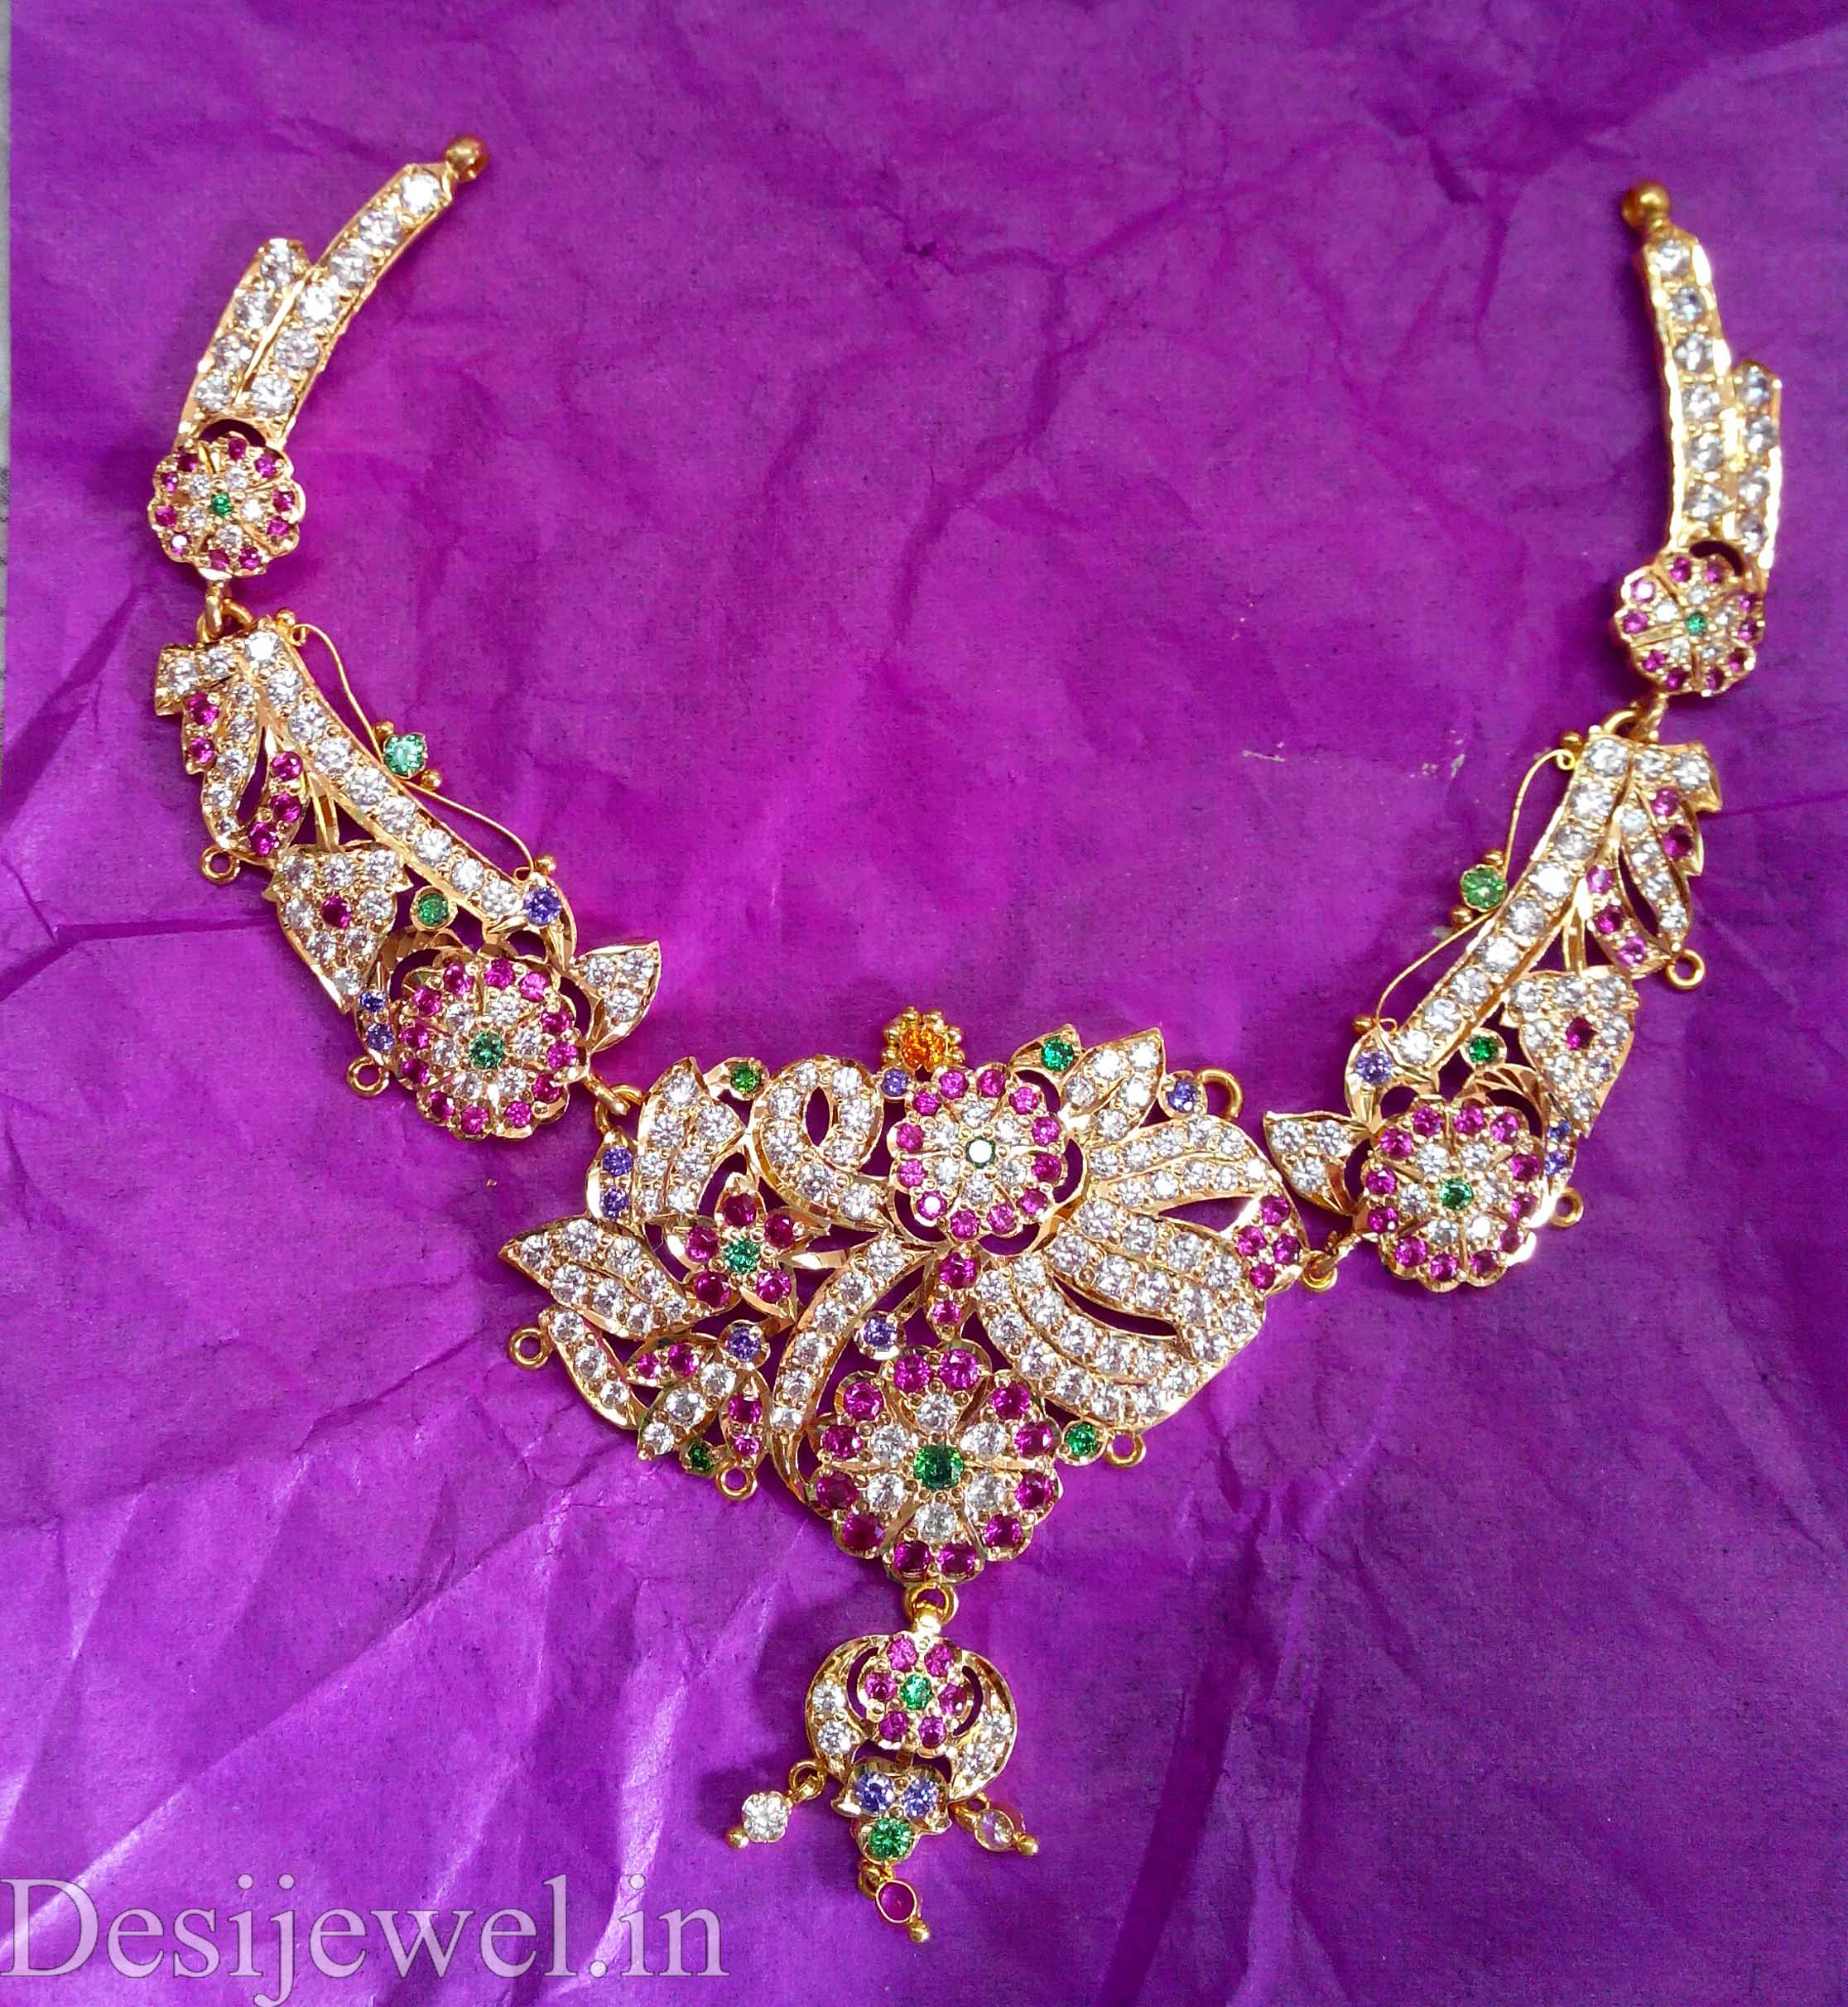 Marwadi Rajasthani Desi gold Necklace And Weight is 28-30 gm